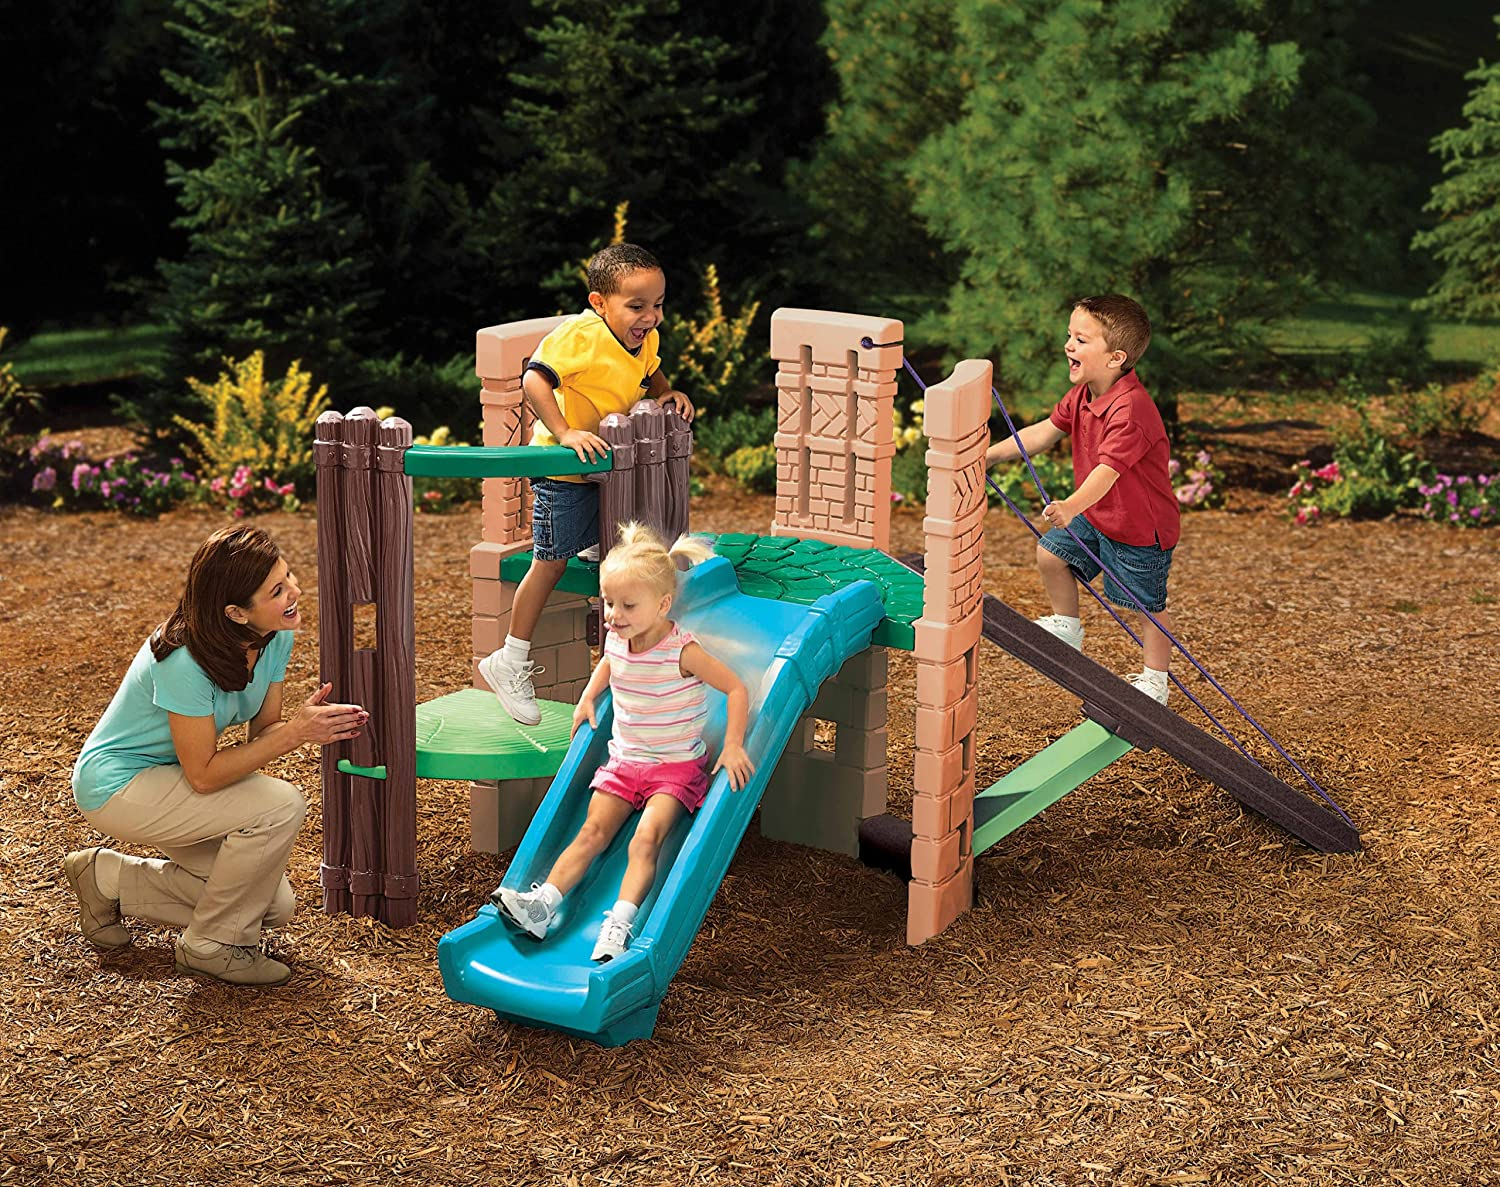 Amazon.com: Little Tikes 2-In-1 Castle Climber: Toys & Games